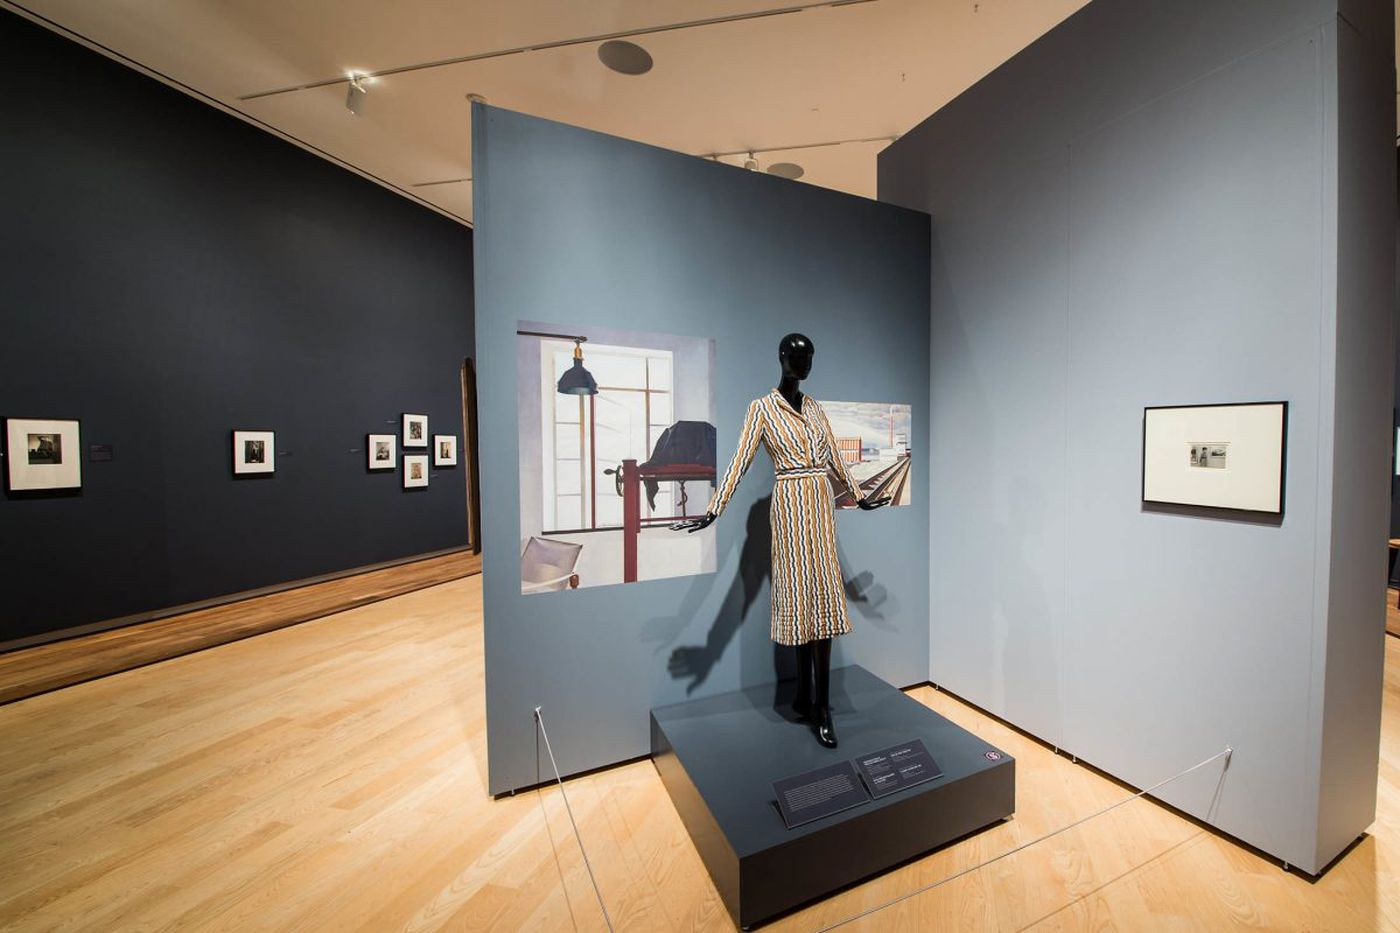 Art review: Charles Sheeler at the Michener